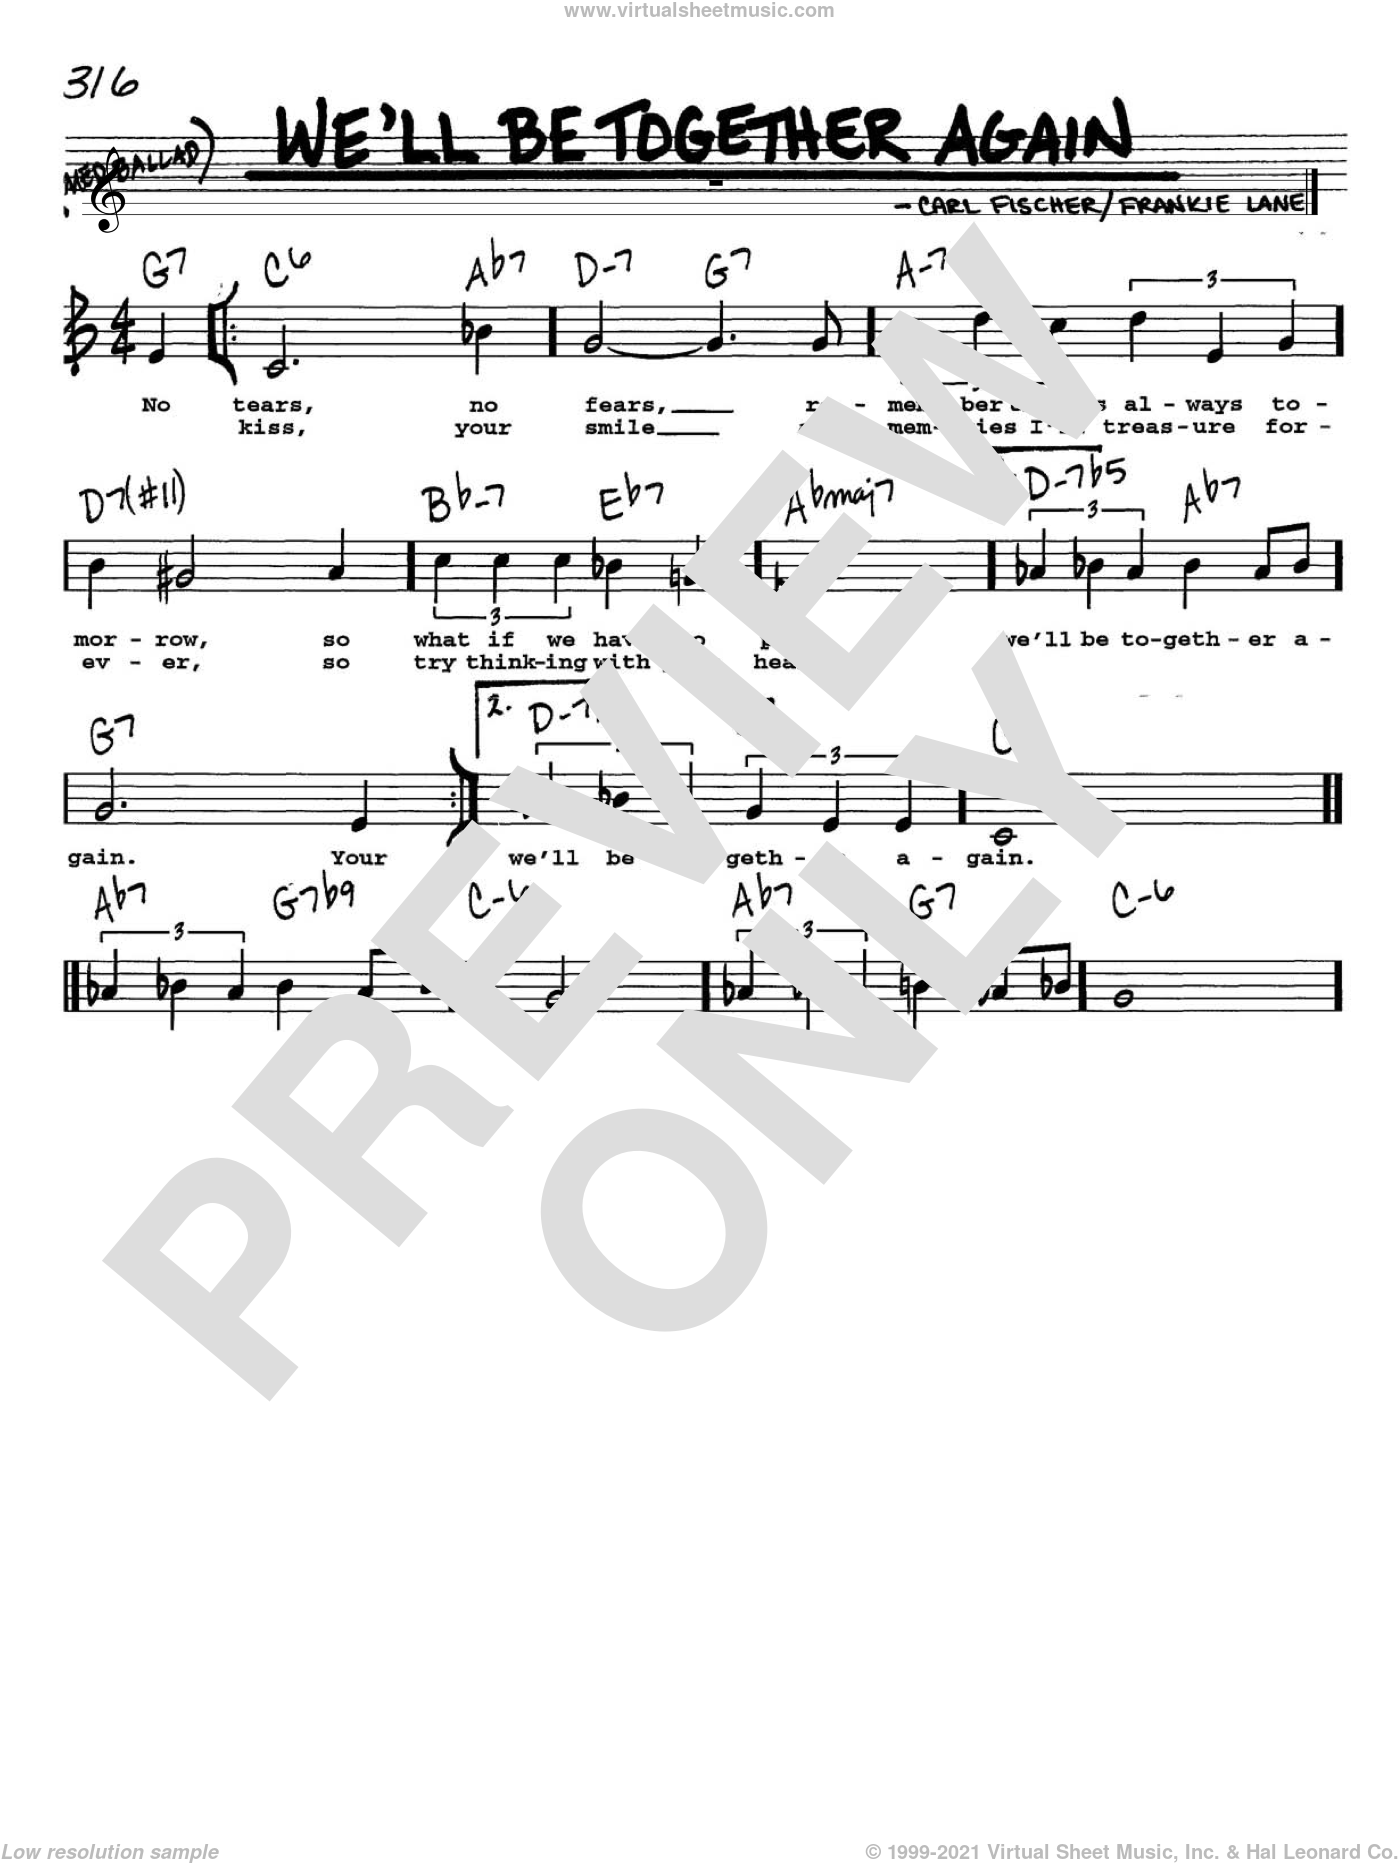 We'll Be Together Again sheet music for voice and other instruments (Vocal Volume 1) by Carl Fischer